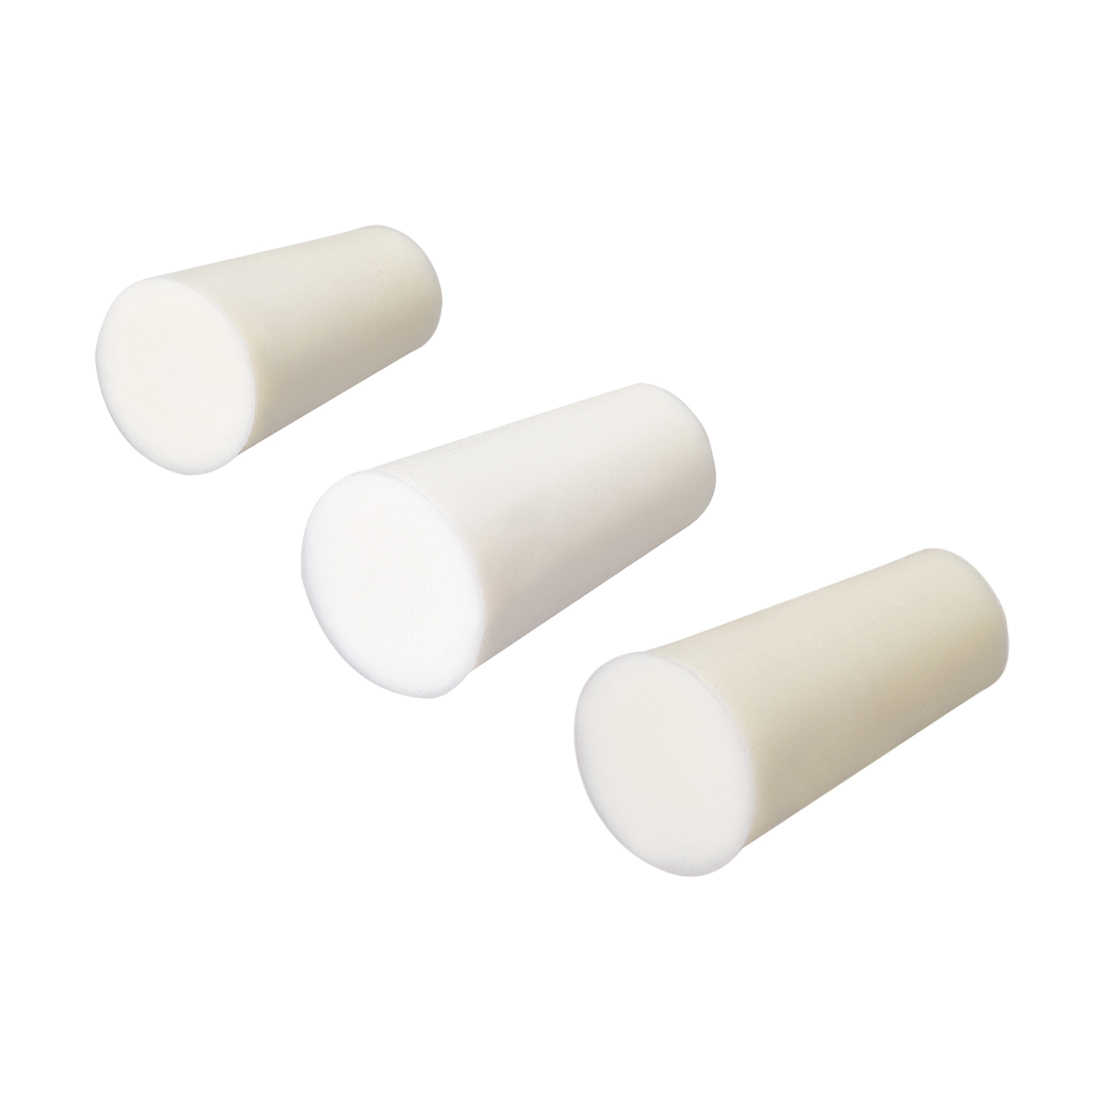 uxcell 9-14mm Beige Drilled Silicone Stopper Plugs for Flask Test Tube Stopper 5pcs